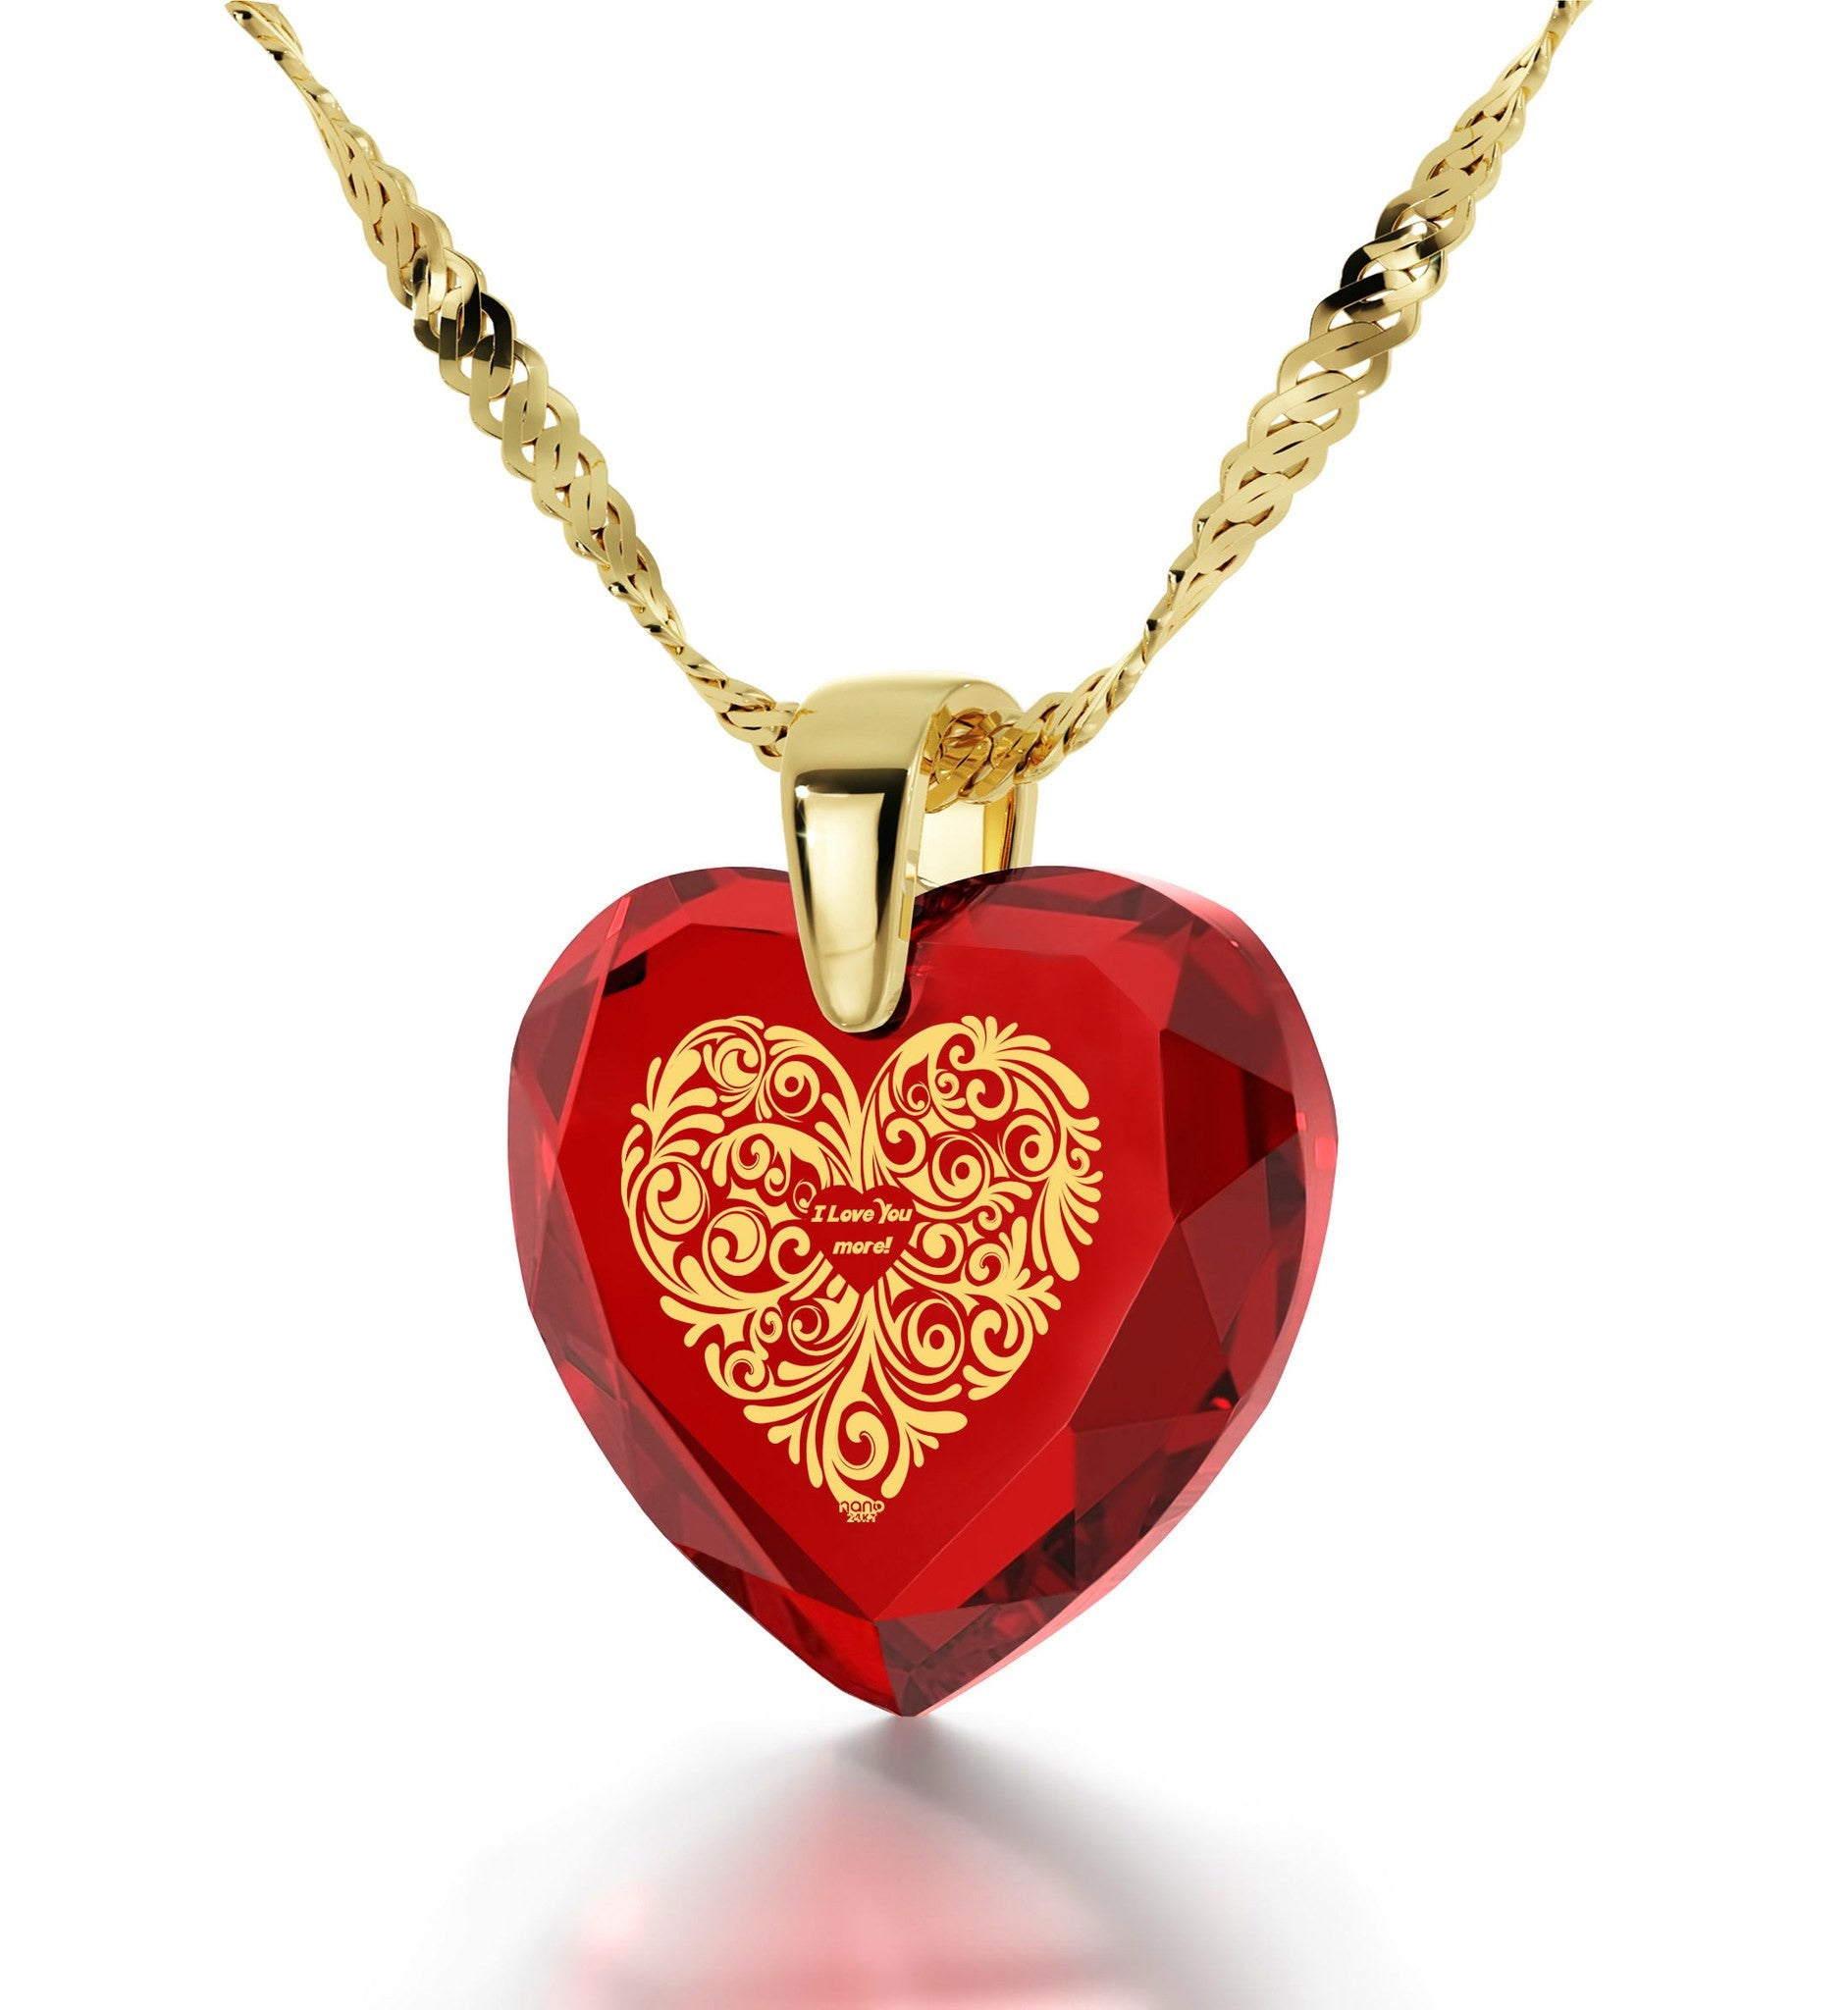 good christmas presents for girlfriend 24k engraved gold filled necklace valentines day ideas